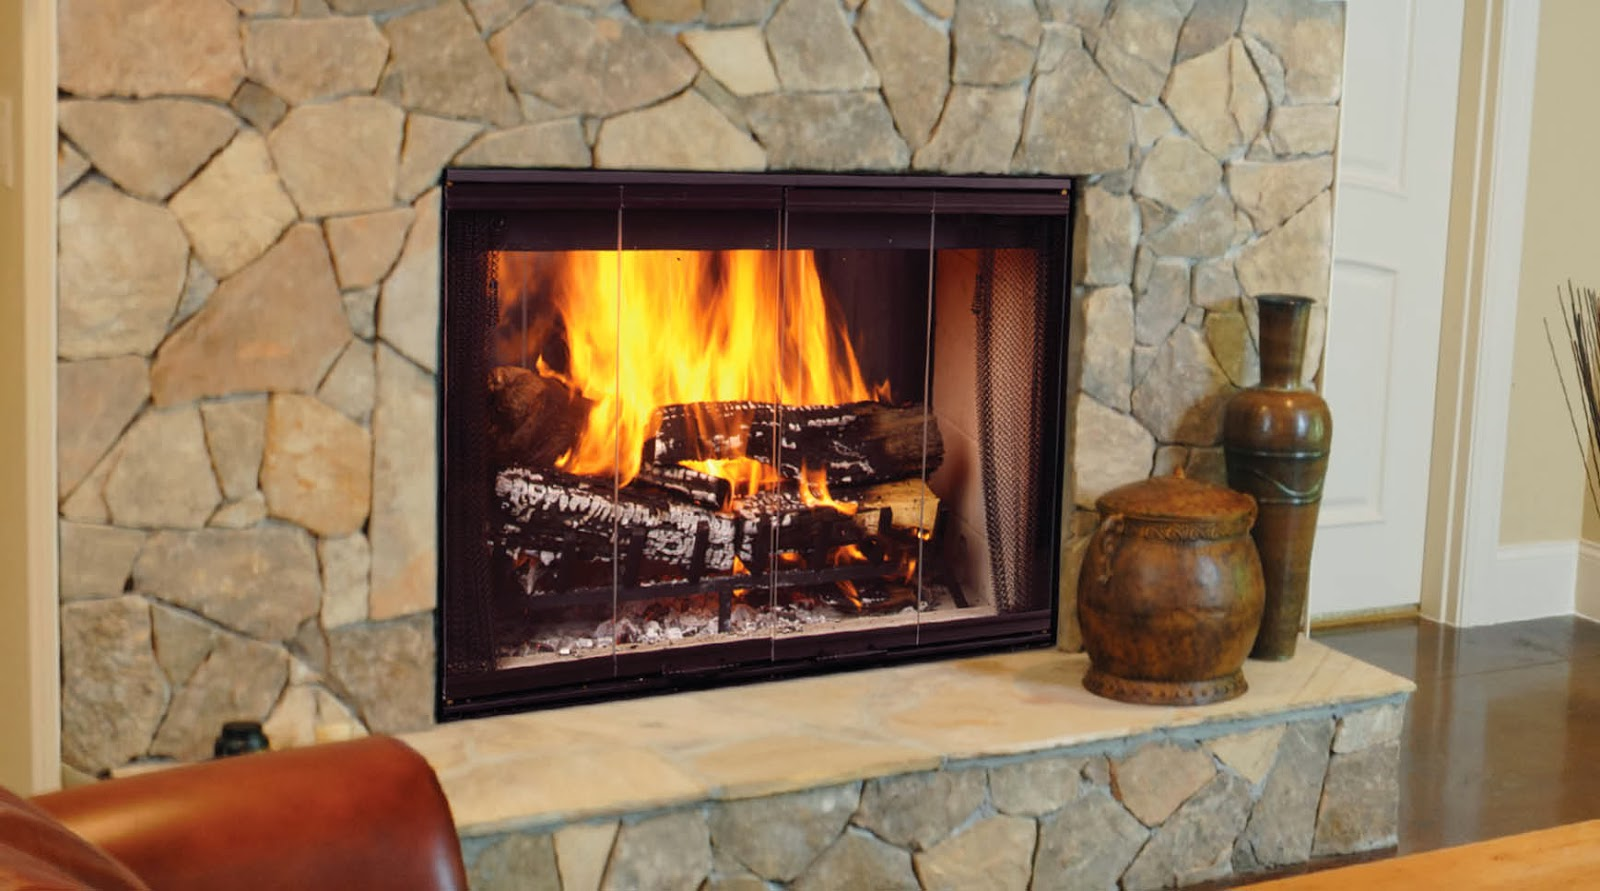 http://majesticproducts.com/products/Fireplaces/Wood-Burning/